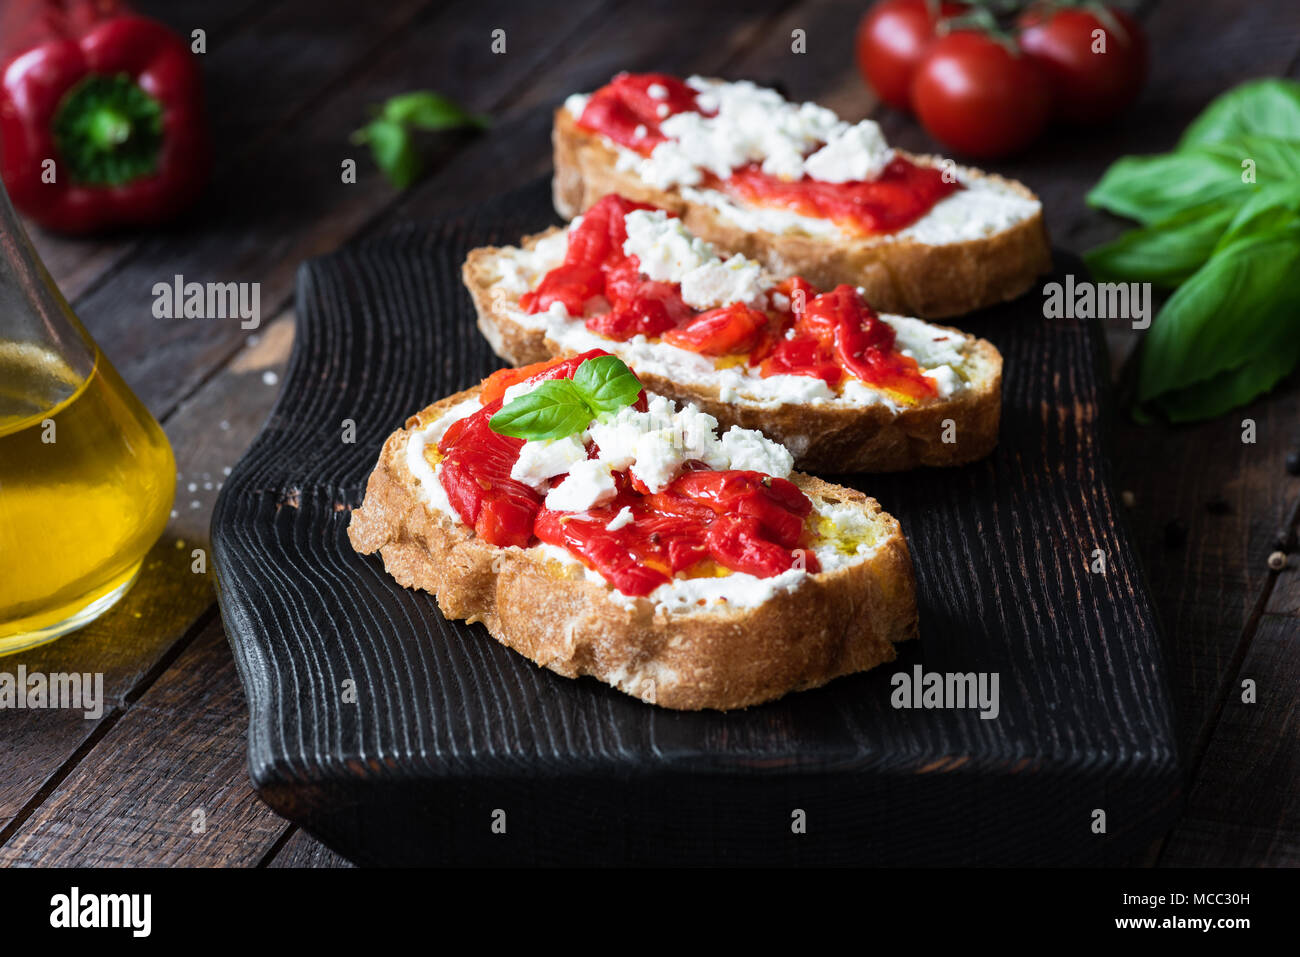 Bruschetta with roasted pepper and goat cheese on black cutting board. Closeup view, selective focus - Stock Image